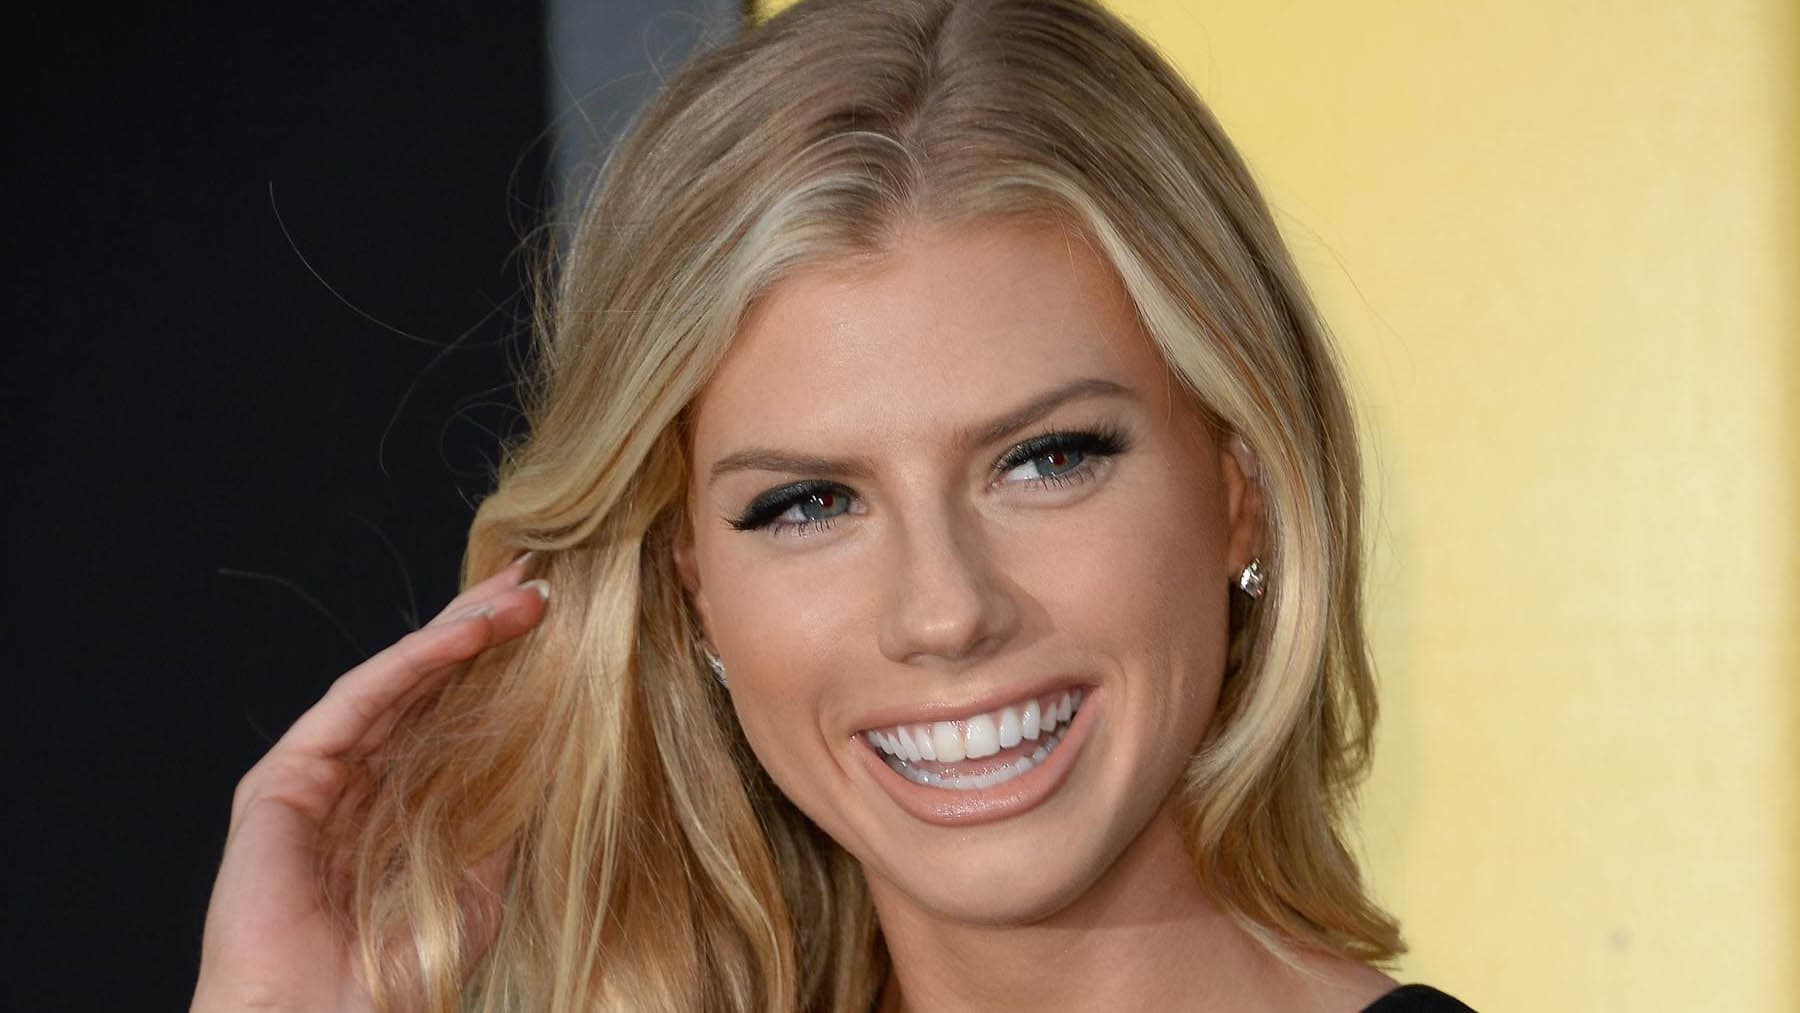 Pictures of Charlotte Mckinney Smile full HD